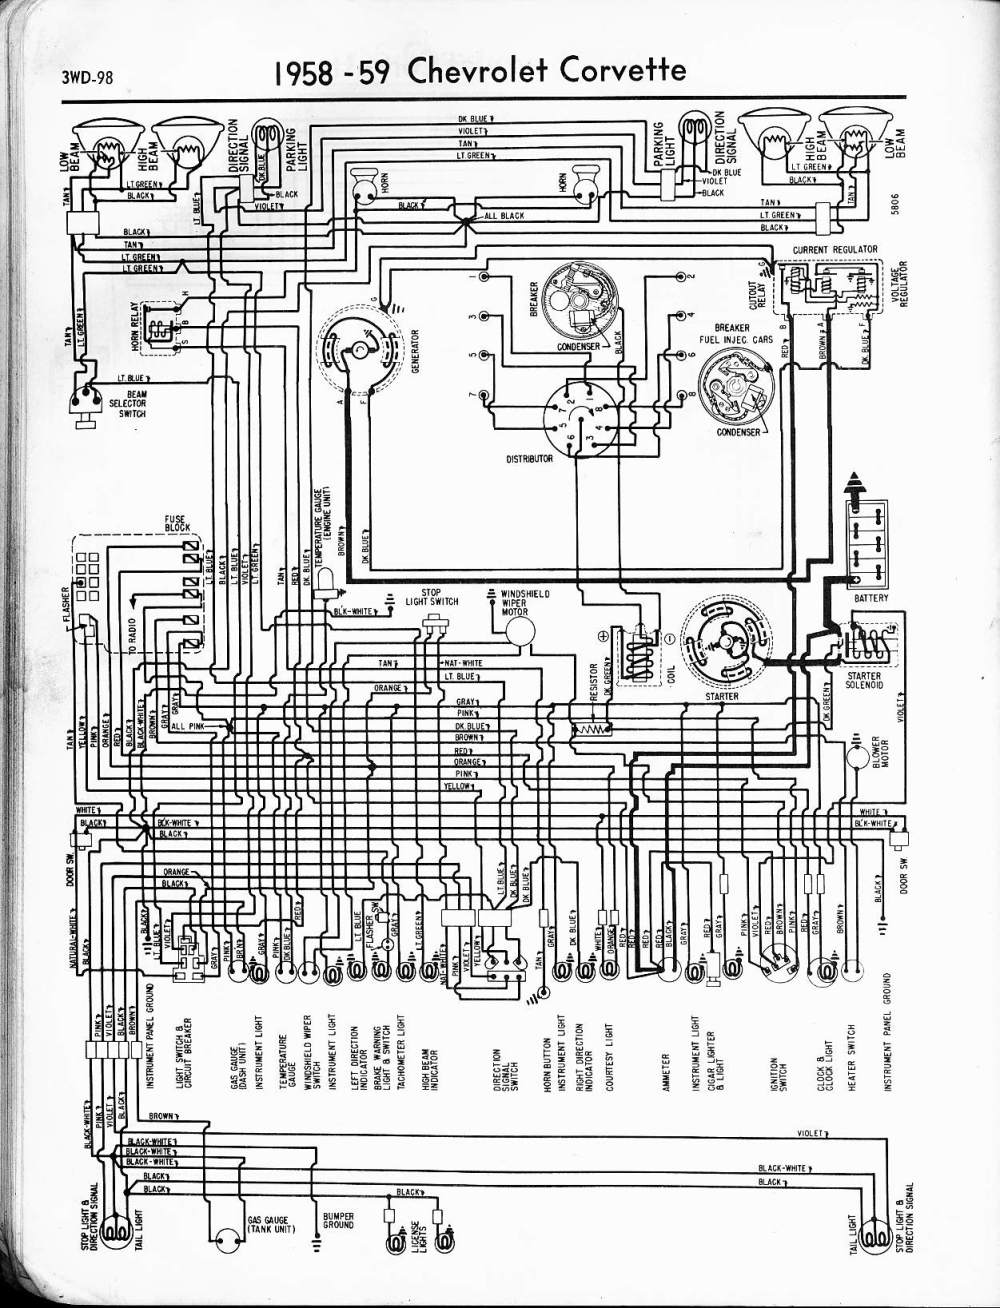 medium resolution of 1965 chevy impala wiring diagram wiring diagram schematics 1970 chevelle wiring harness diagram 1965 chevrolet wiring diagram schematic harness